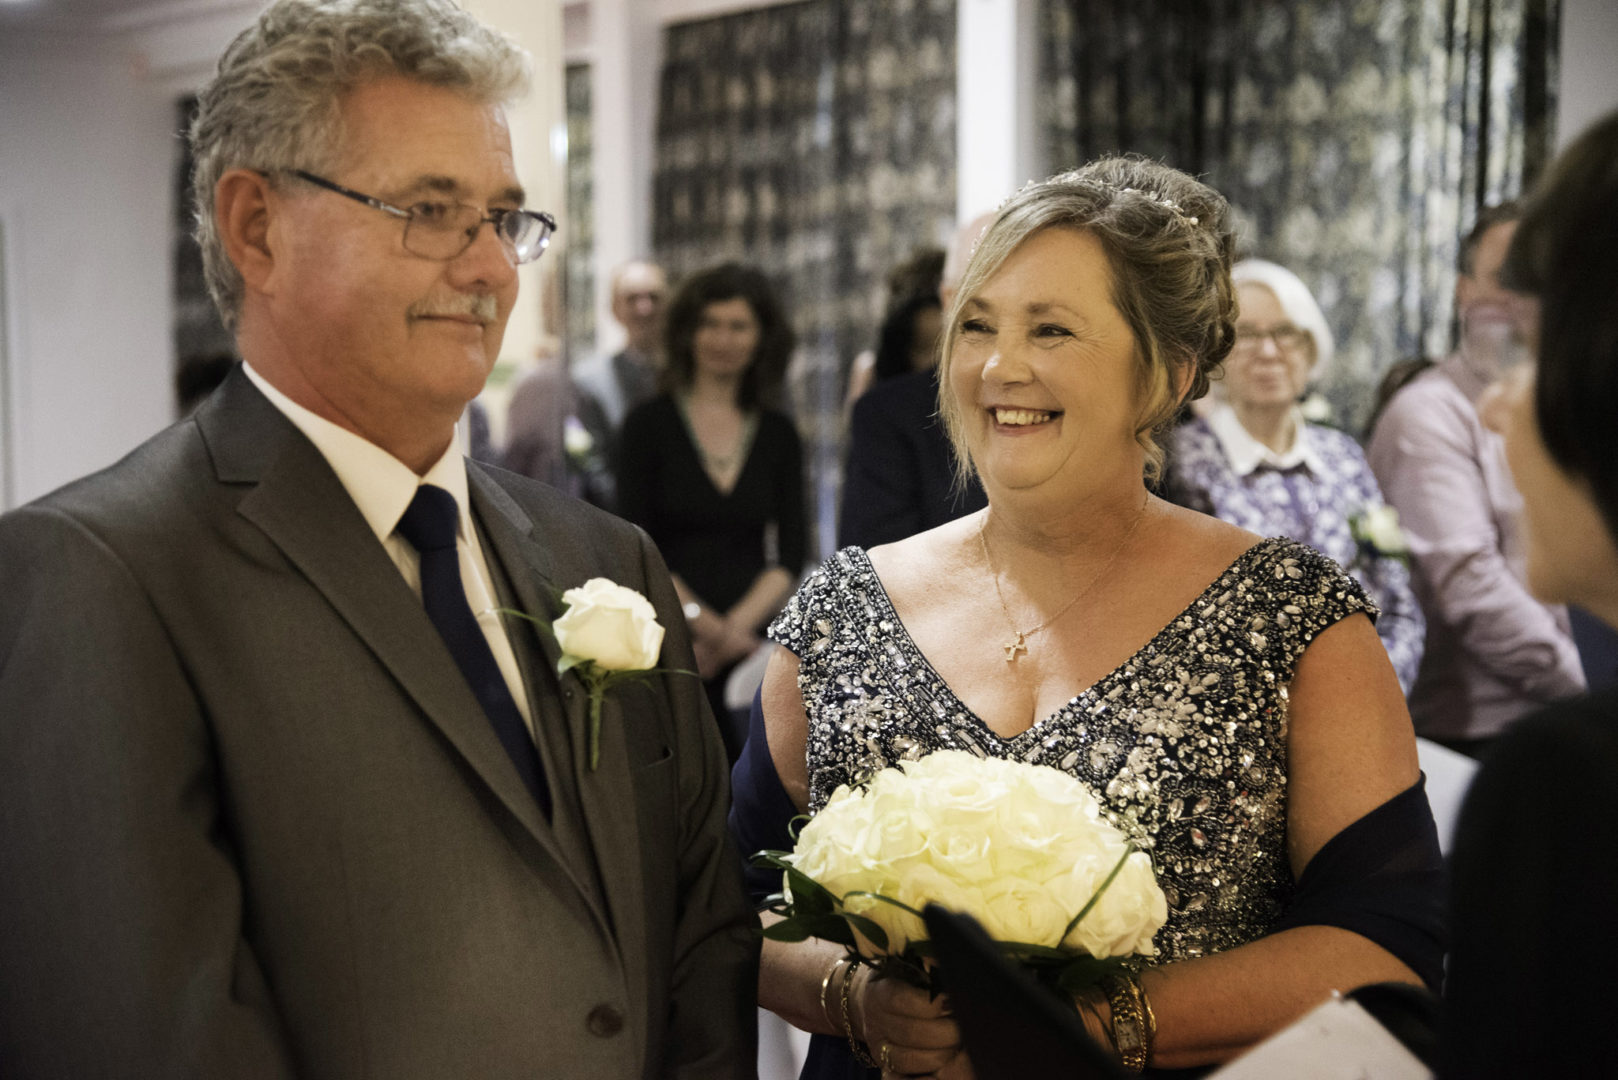 Smiles reigned through a cheerful and relaxed ceremony. Wedding vow renewal at The Royal Court Hotel